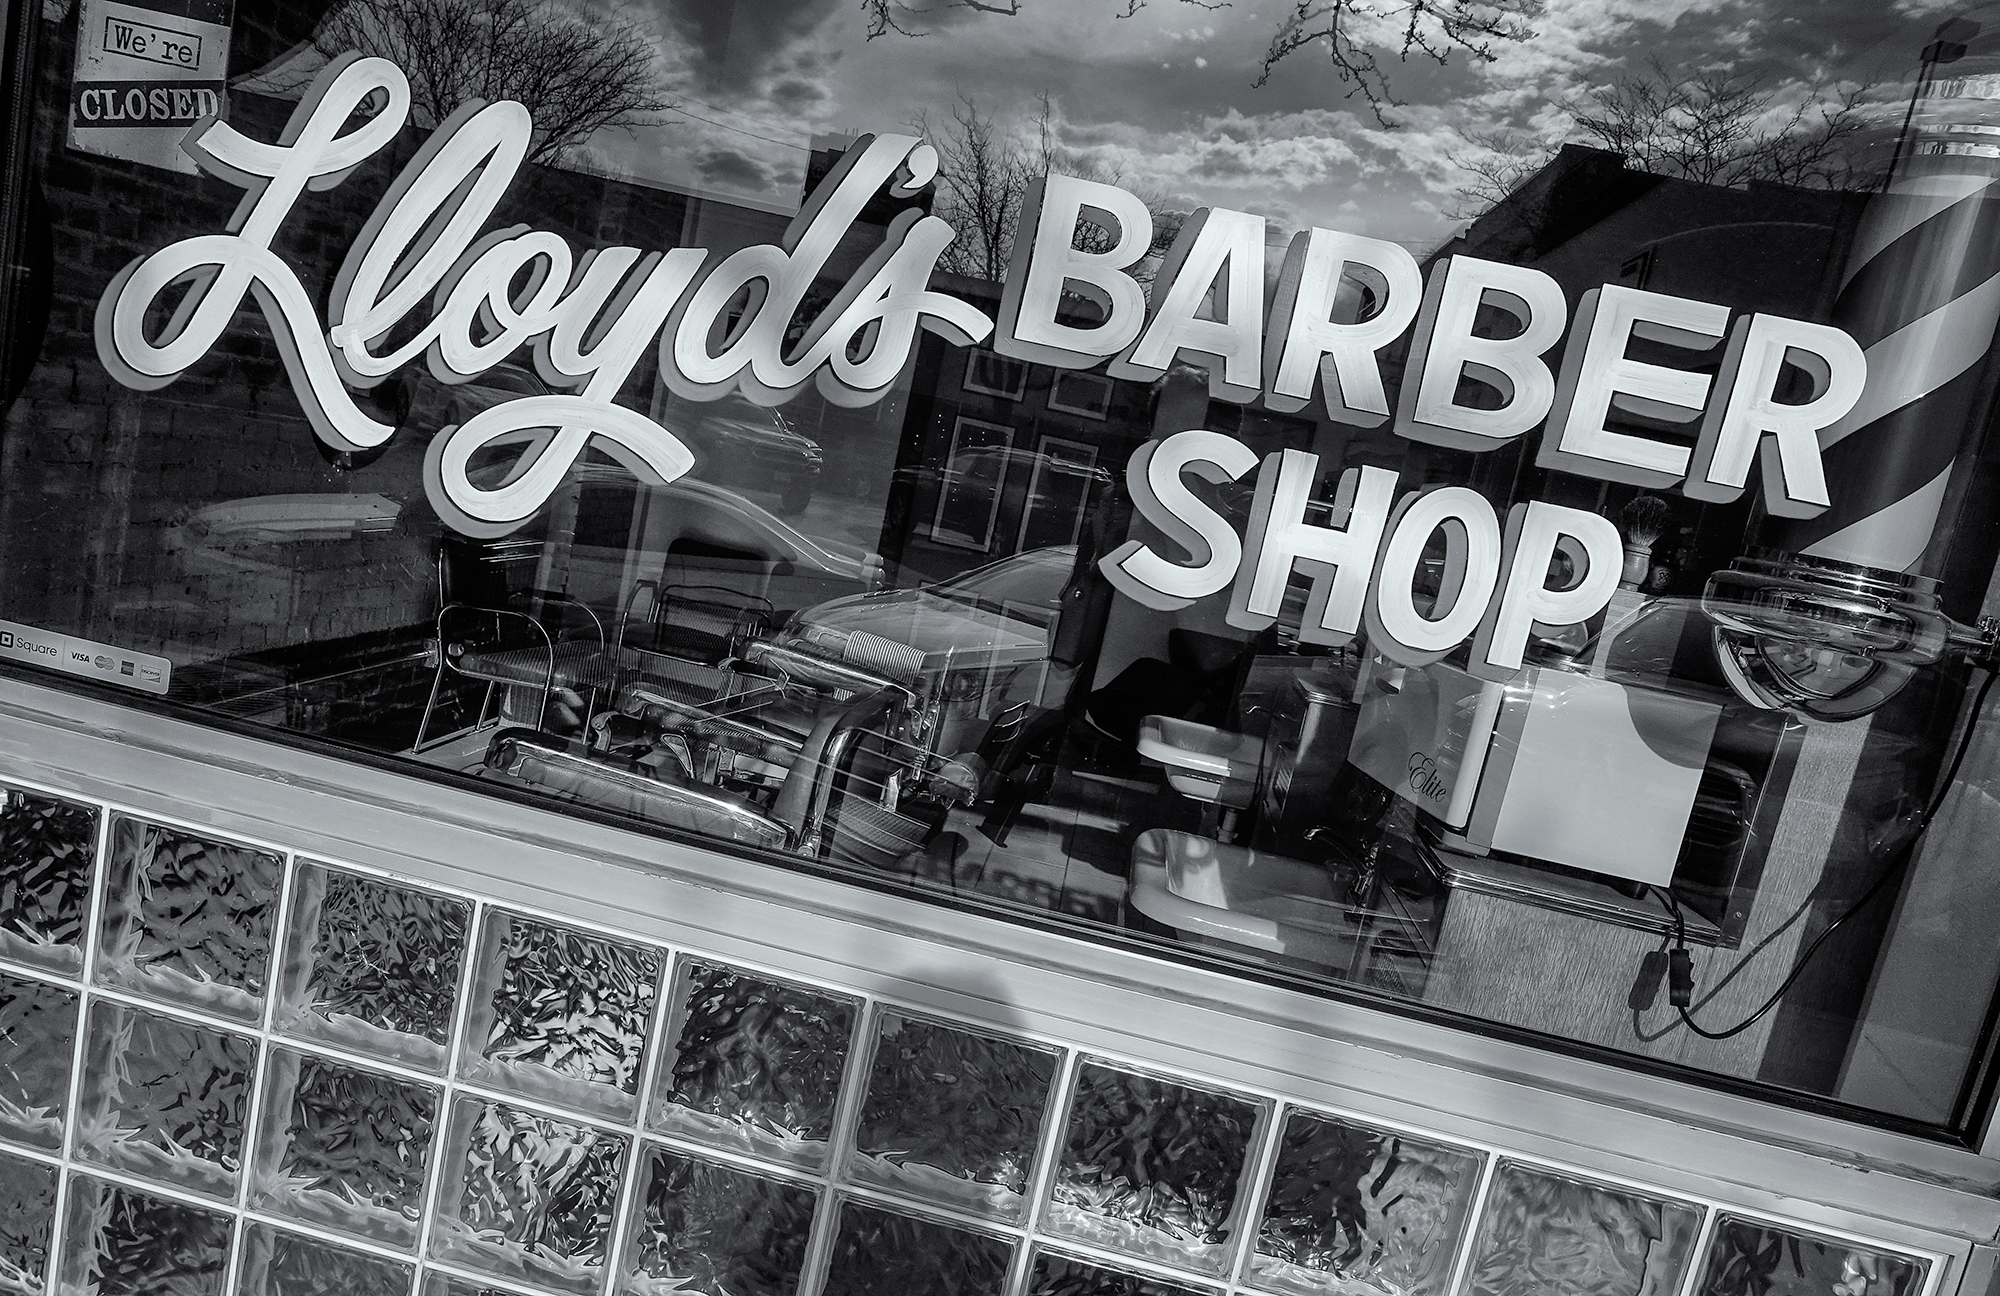 Barber Shop, #2. Ft. Collins, Colorado, 2016